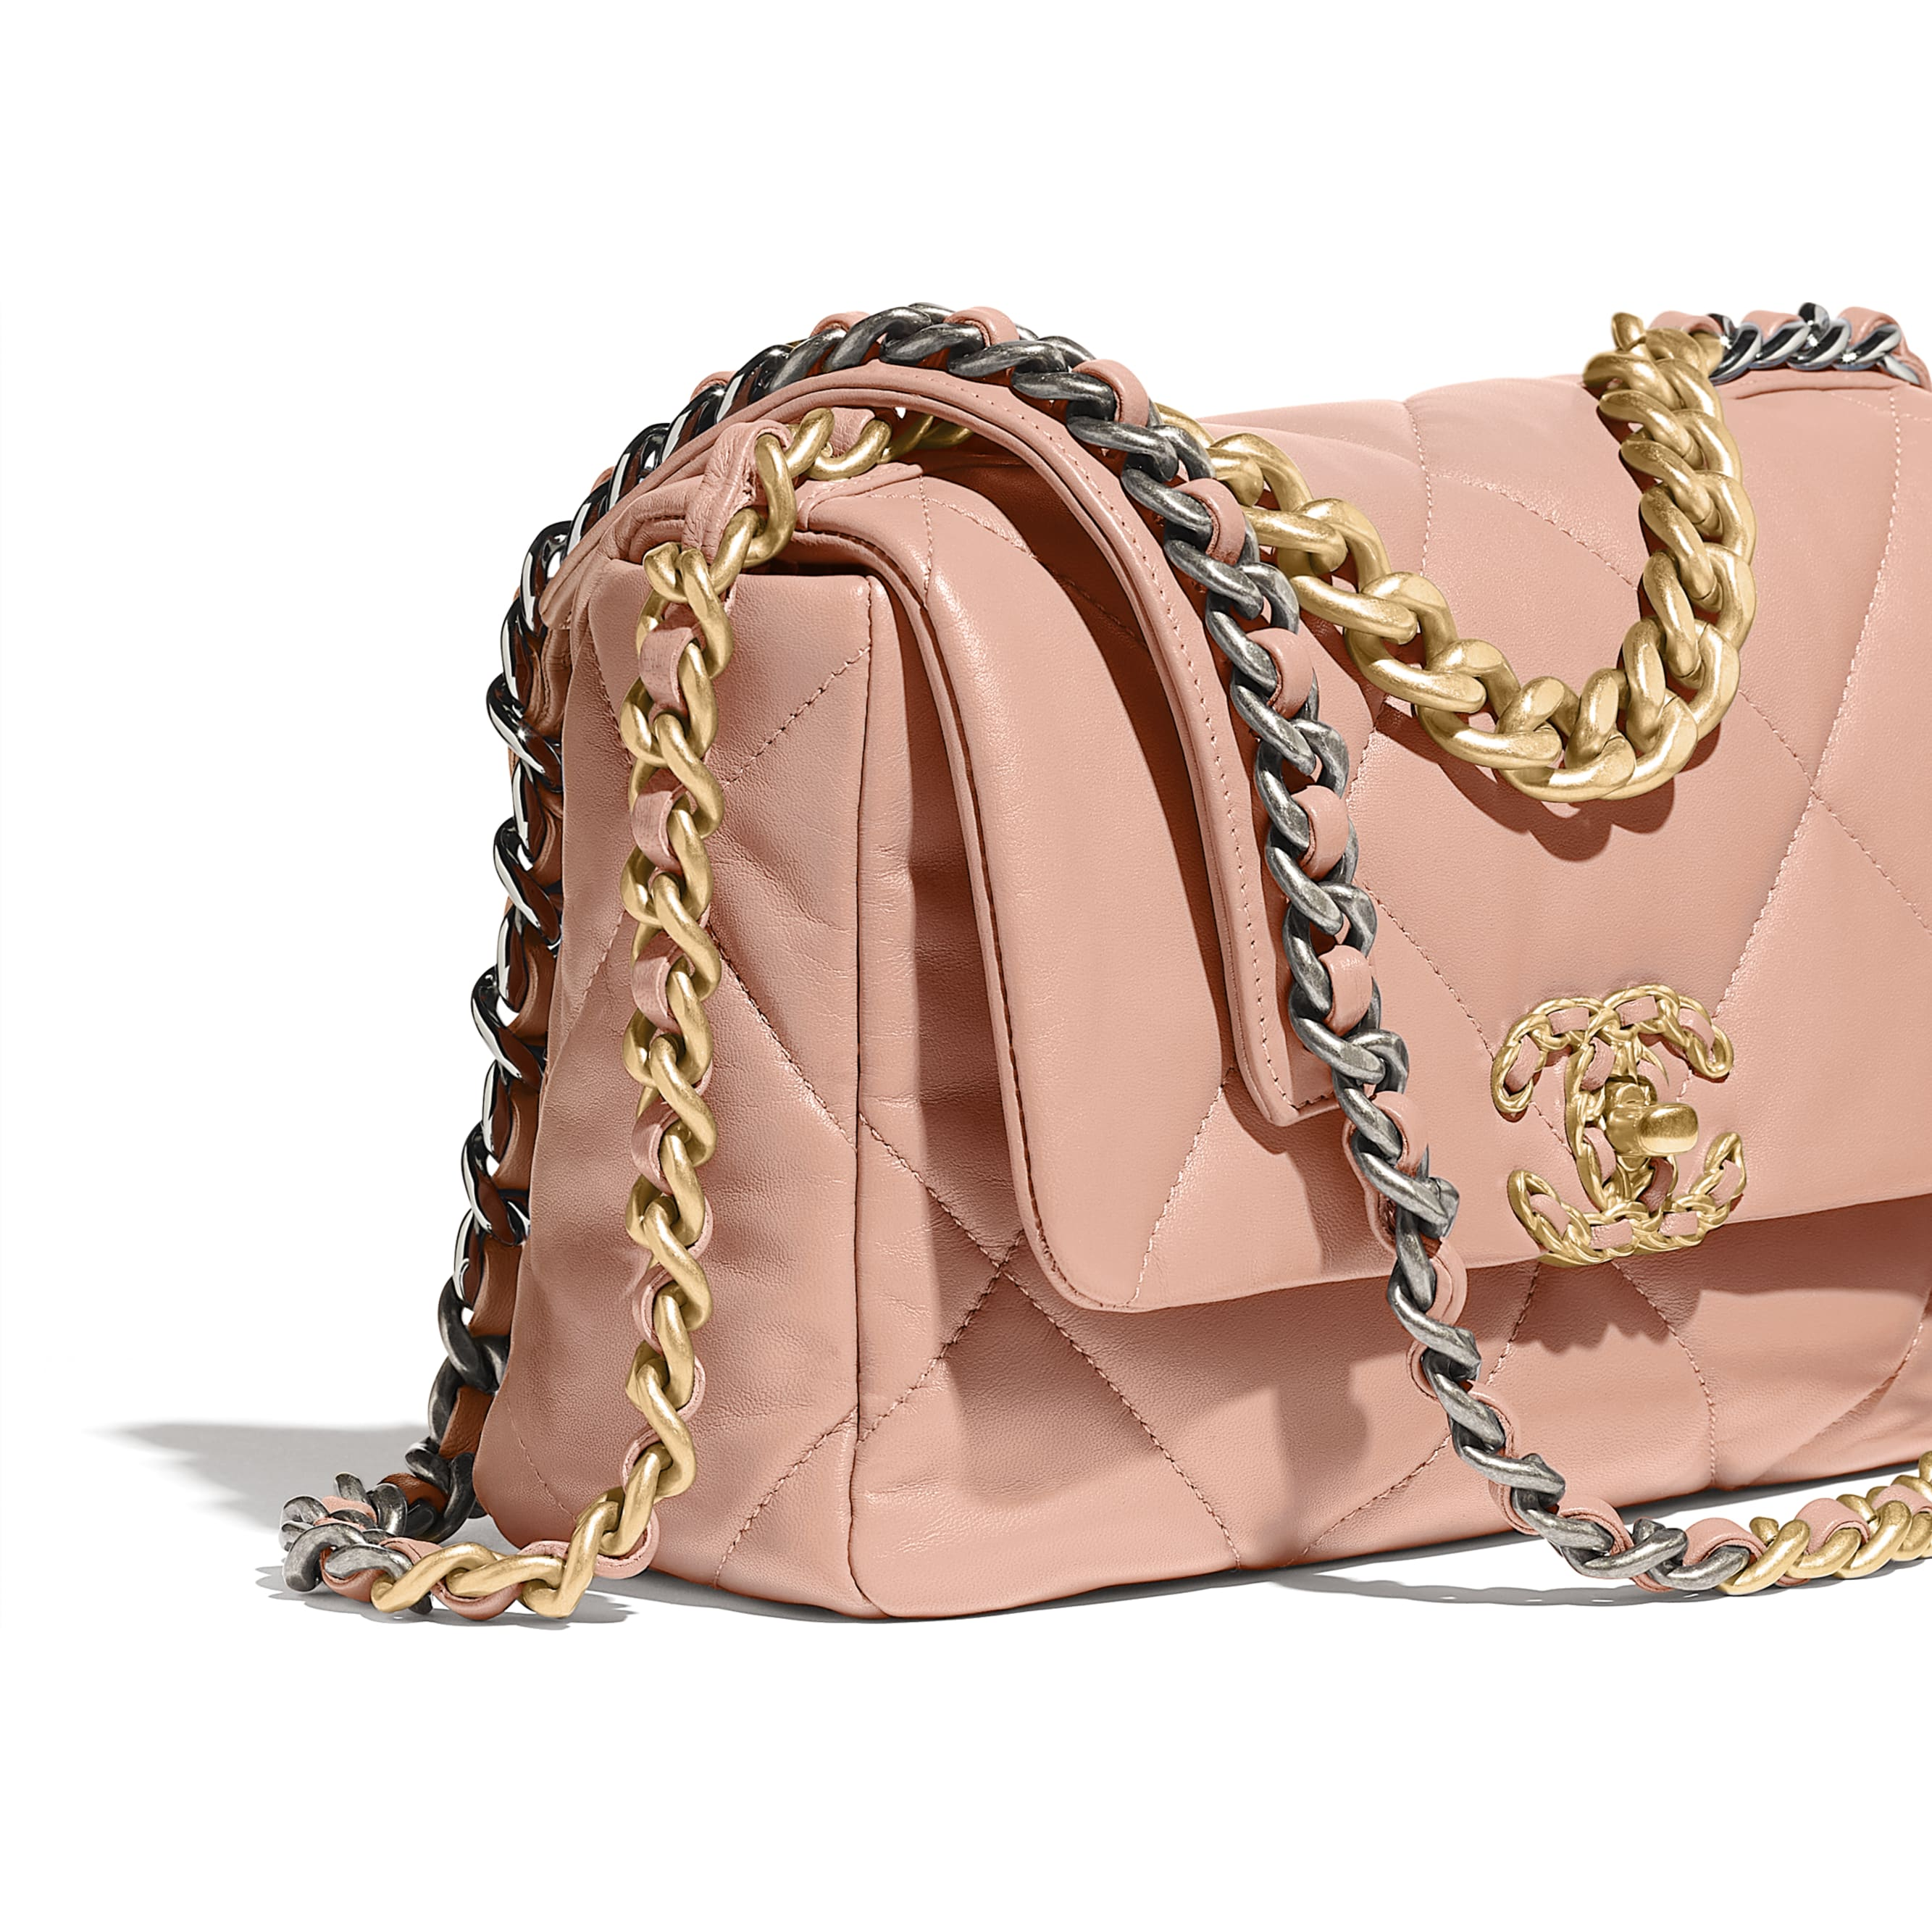 CHANEL 19 Flap Bag - Light Pink - Goatskin, Gold-Tone, Silver-Tone & Ruthenium-Finish Metal - Extra view - see standard sized version